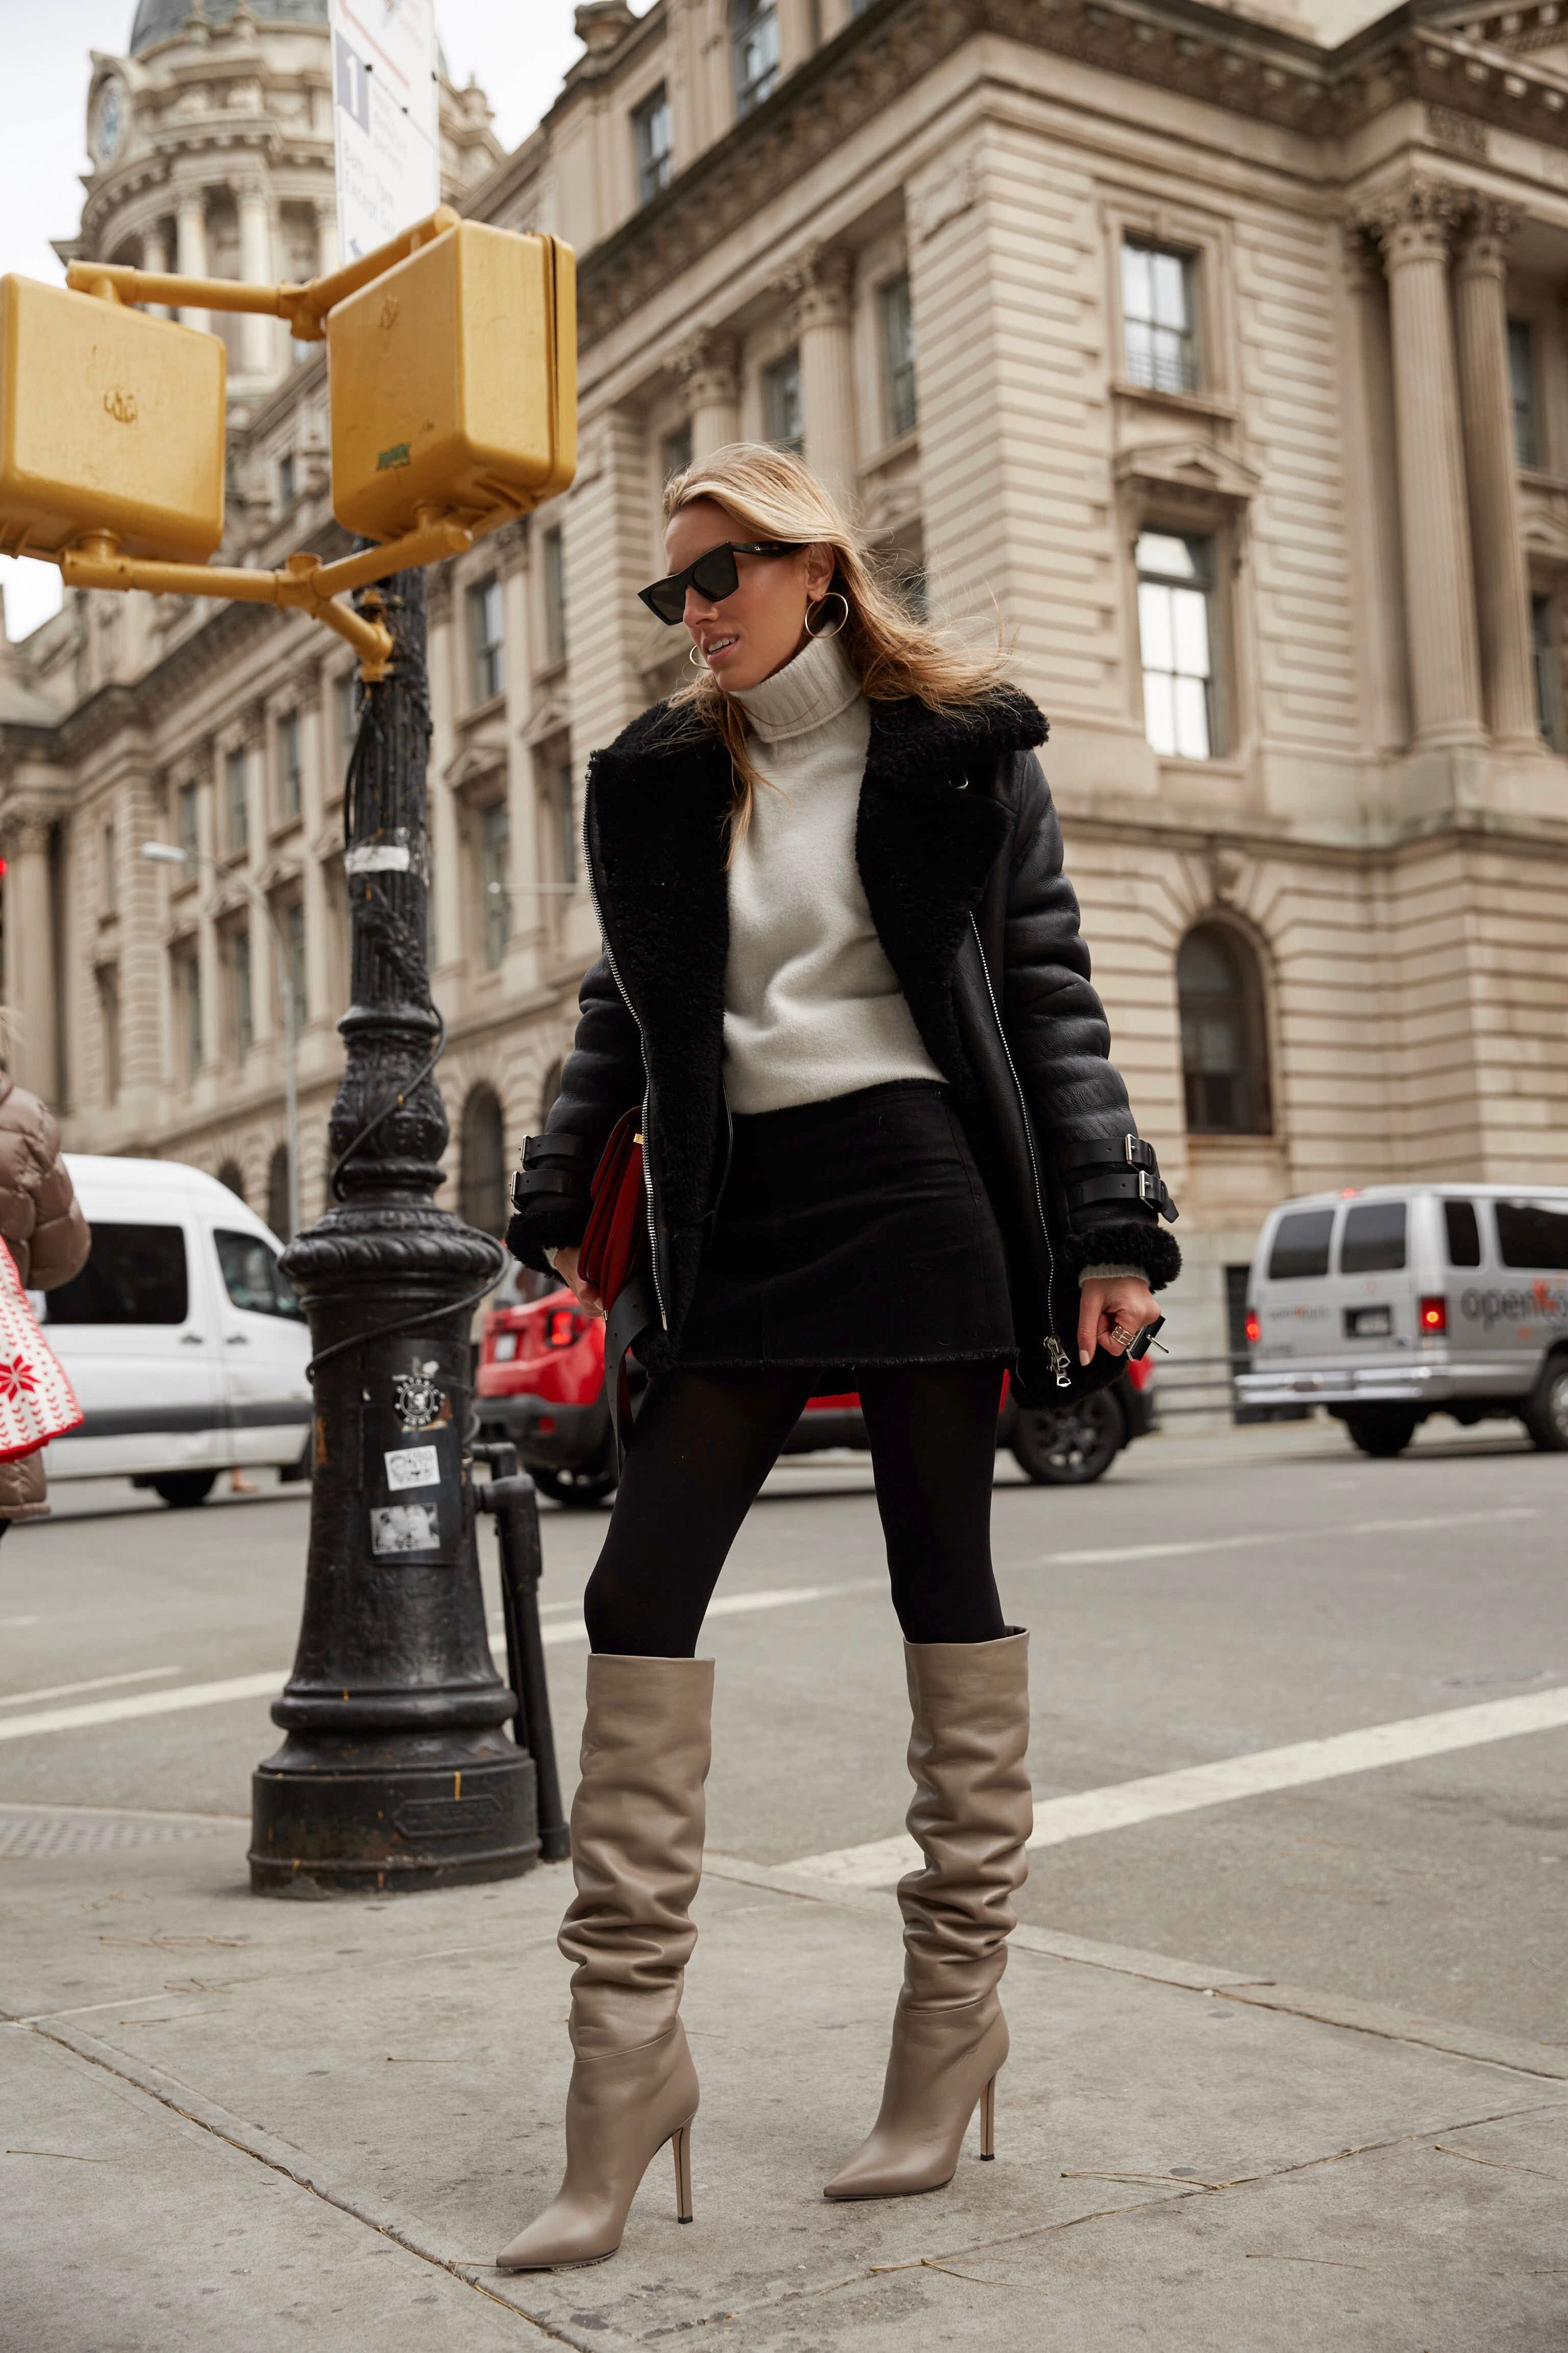 f5cba097f6b5 Over The Knee Boots · Fashion Blogger Lisa DiCicco Cahue wearing Tamara  Mellon Icon boot in Stone with black tights,